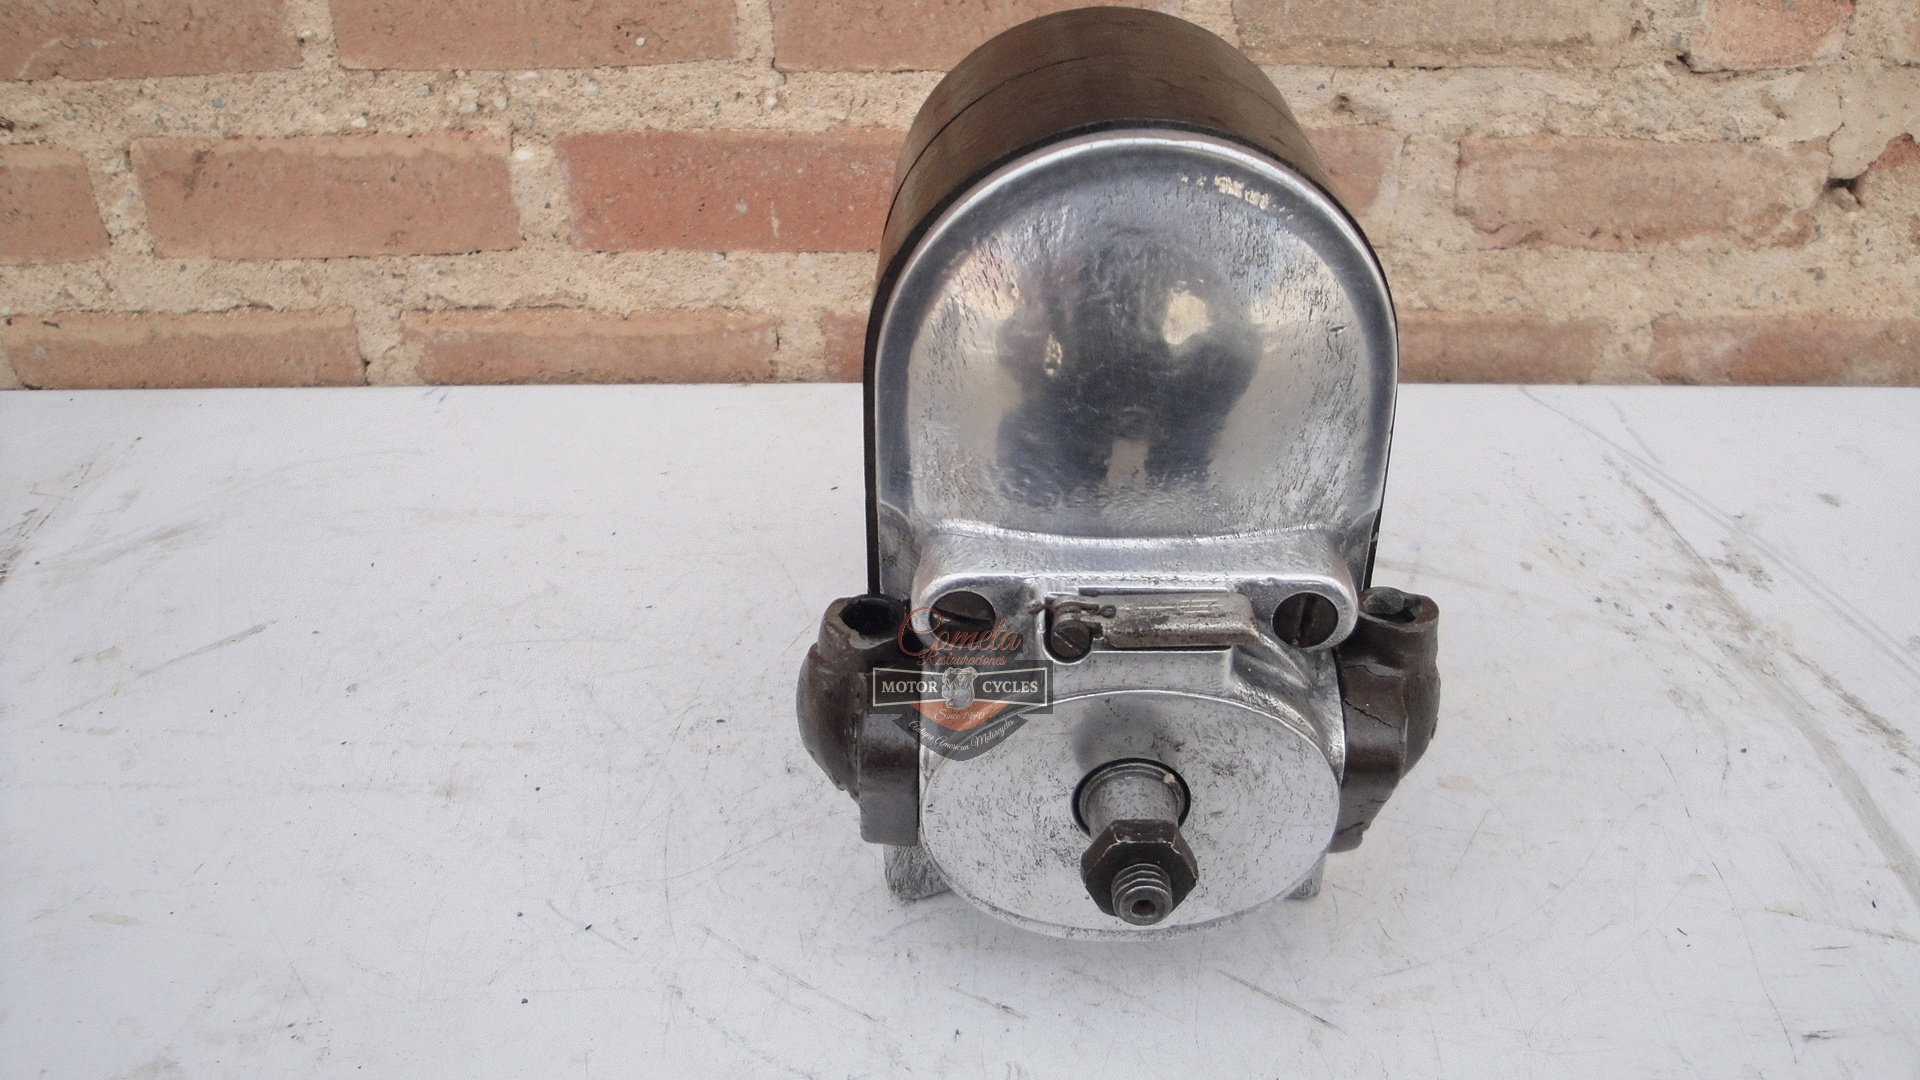 MAGNETO BOSCH ZE2  180°  NORTON /  BROUGH  SUPERIOR / BSA / COVENTRY EAGLE / ZENITH / AJS / ARIEL !